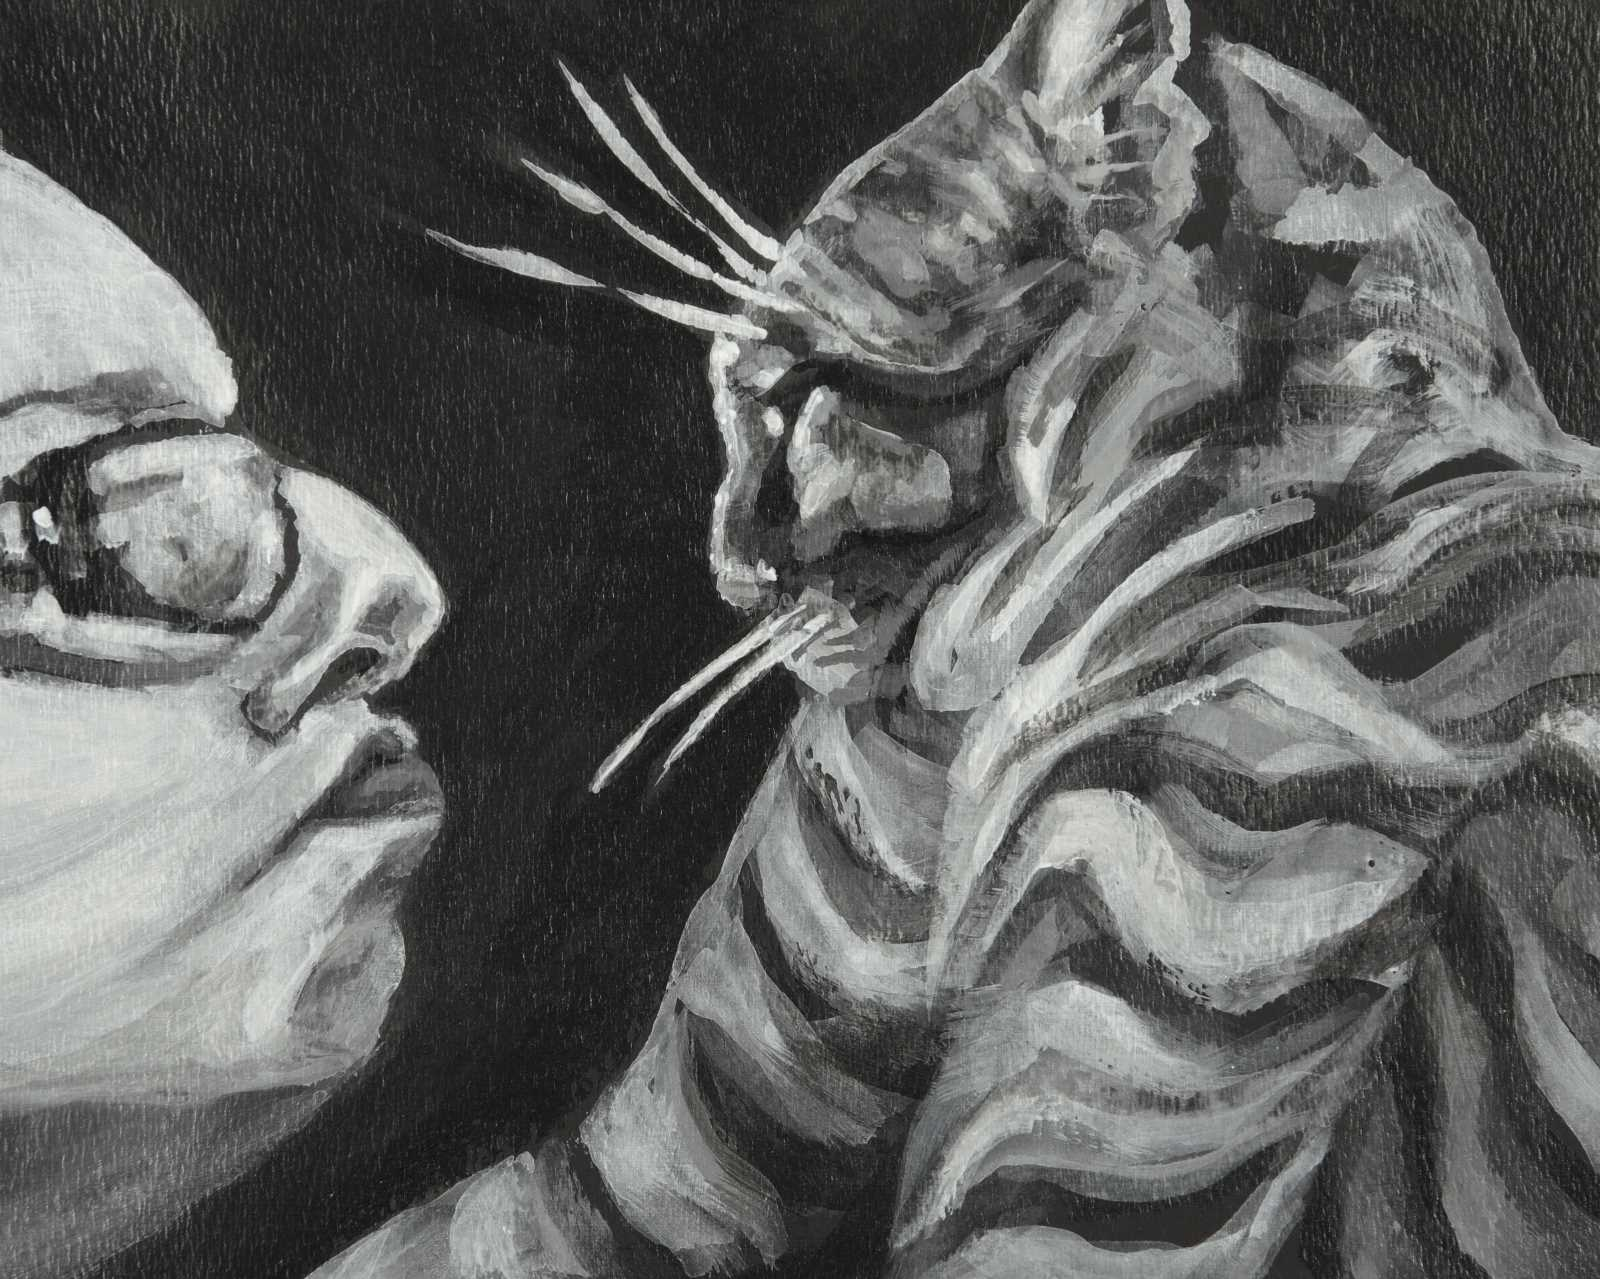 Intimate self portrait close up of annoyed cat and human, black and white acrylic on black ground.